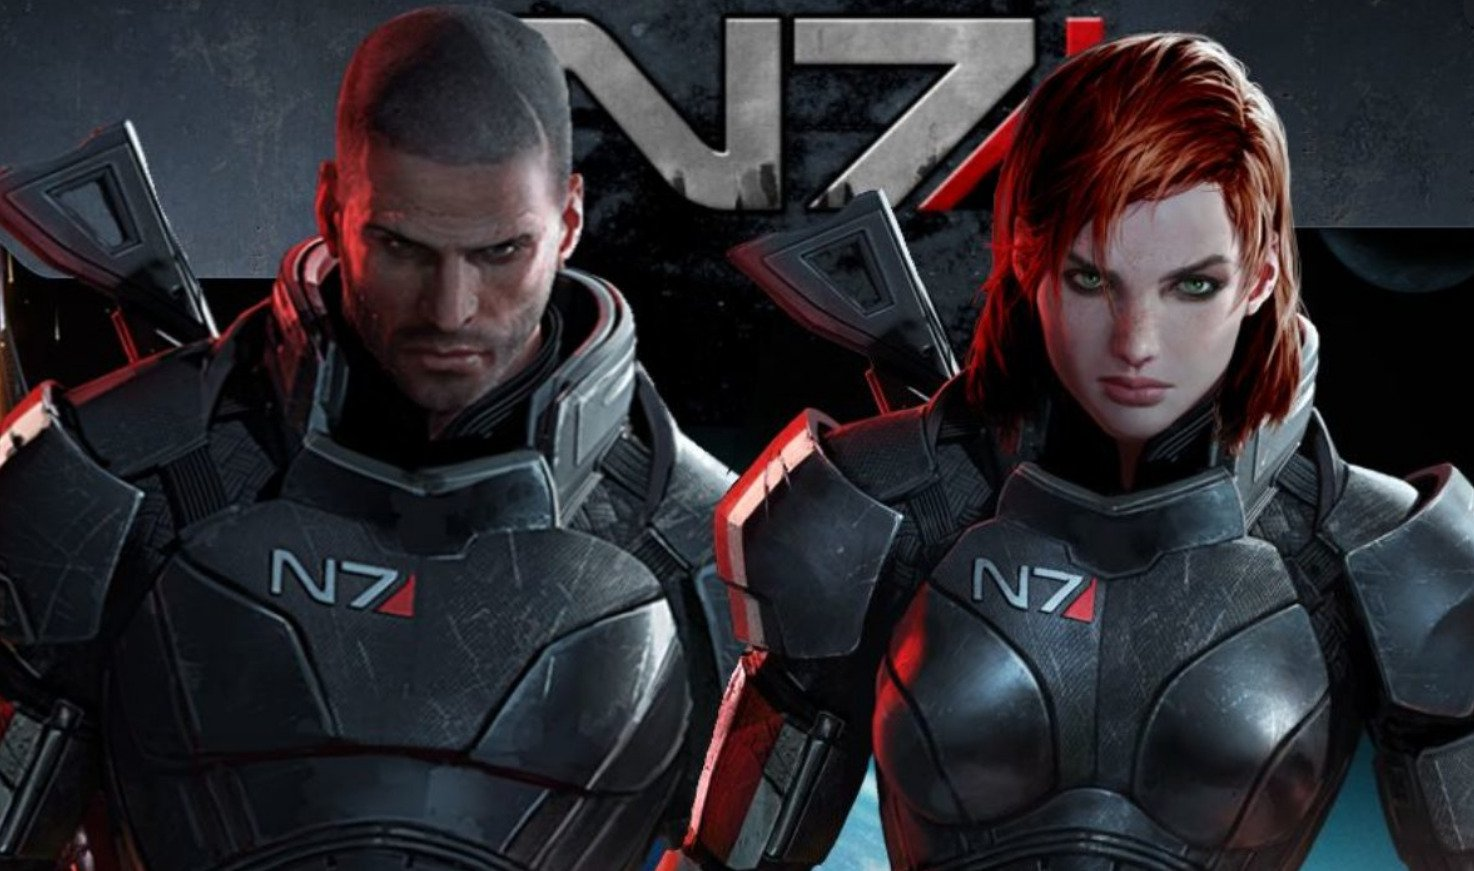 Mass Effect Voice Actors Are Reuniting On N7 Day. Will We Finally See An Announcement For The The Trilogy's Re-Release?